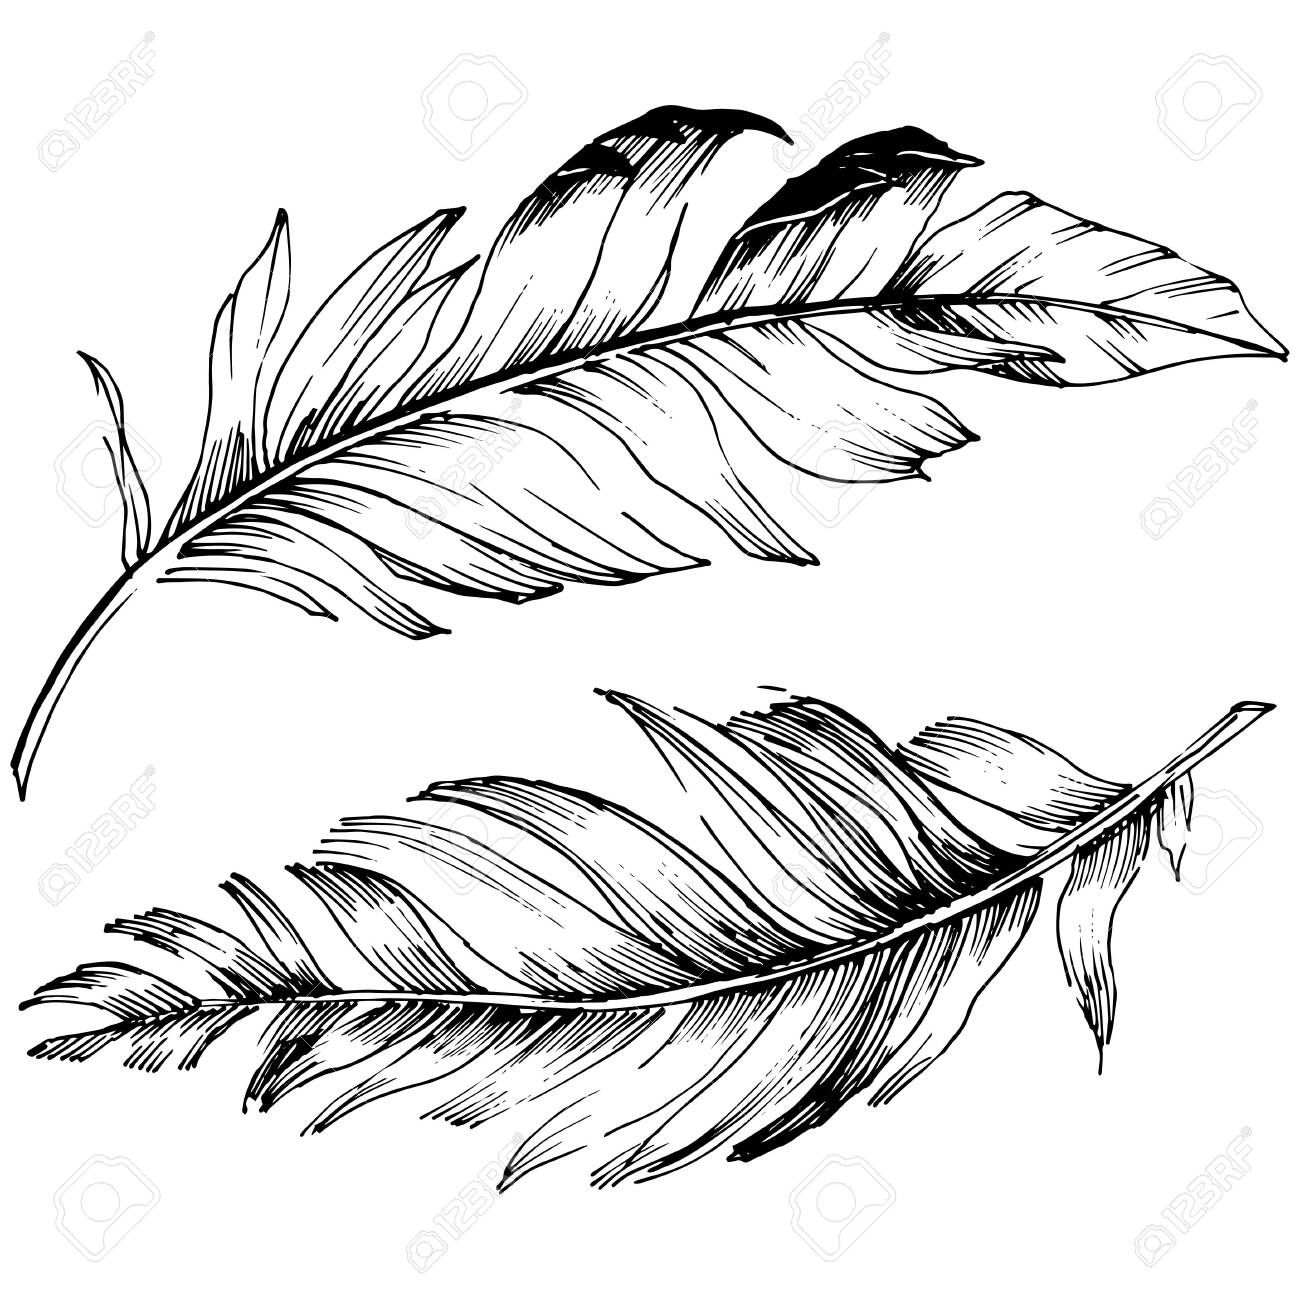 Vector bird feather from wing isolated. Isolated illustration element. Black and white engraved ink art. - 133390287